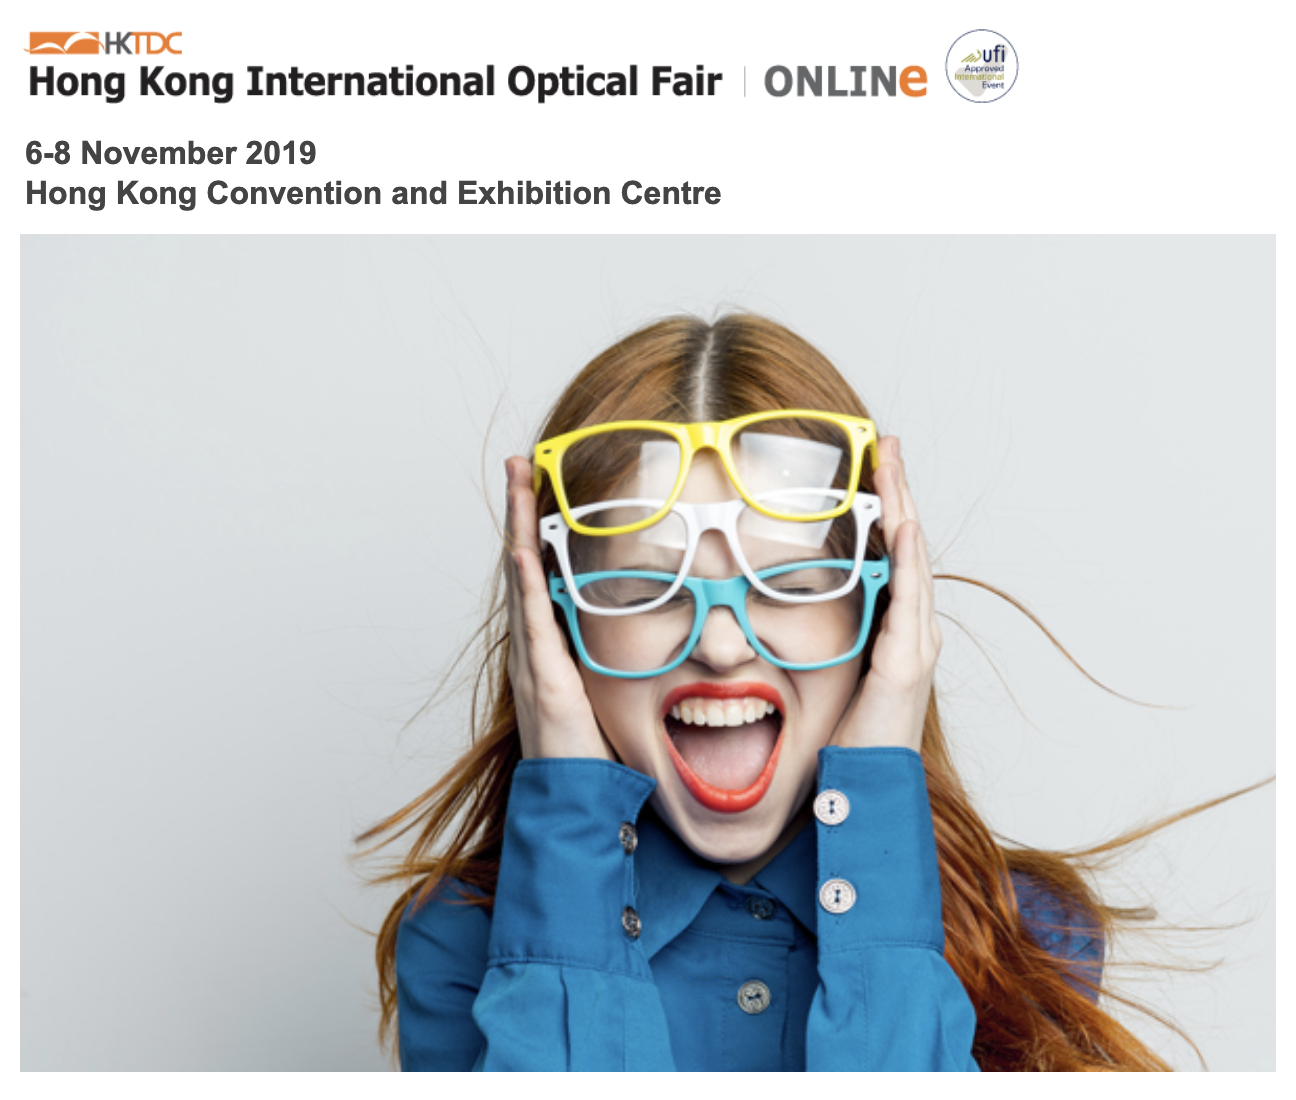 HKOF 2019 – Hong Kong Optical Fair 6-8 November 2019